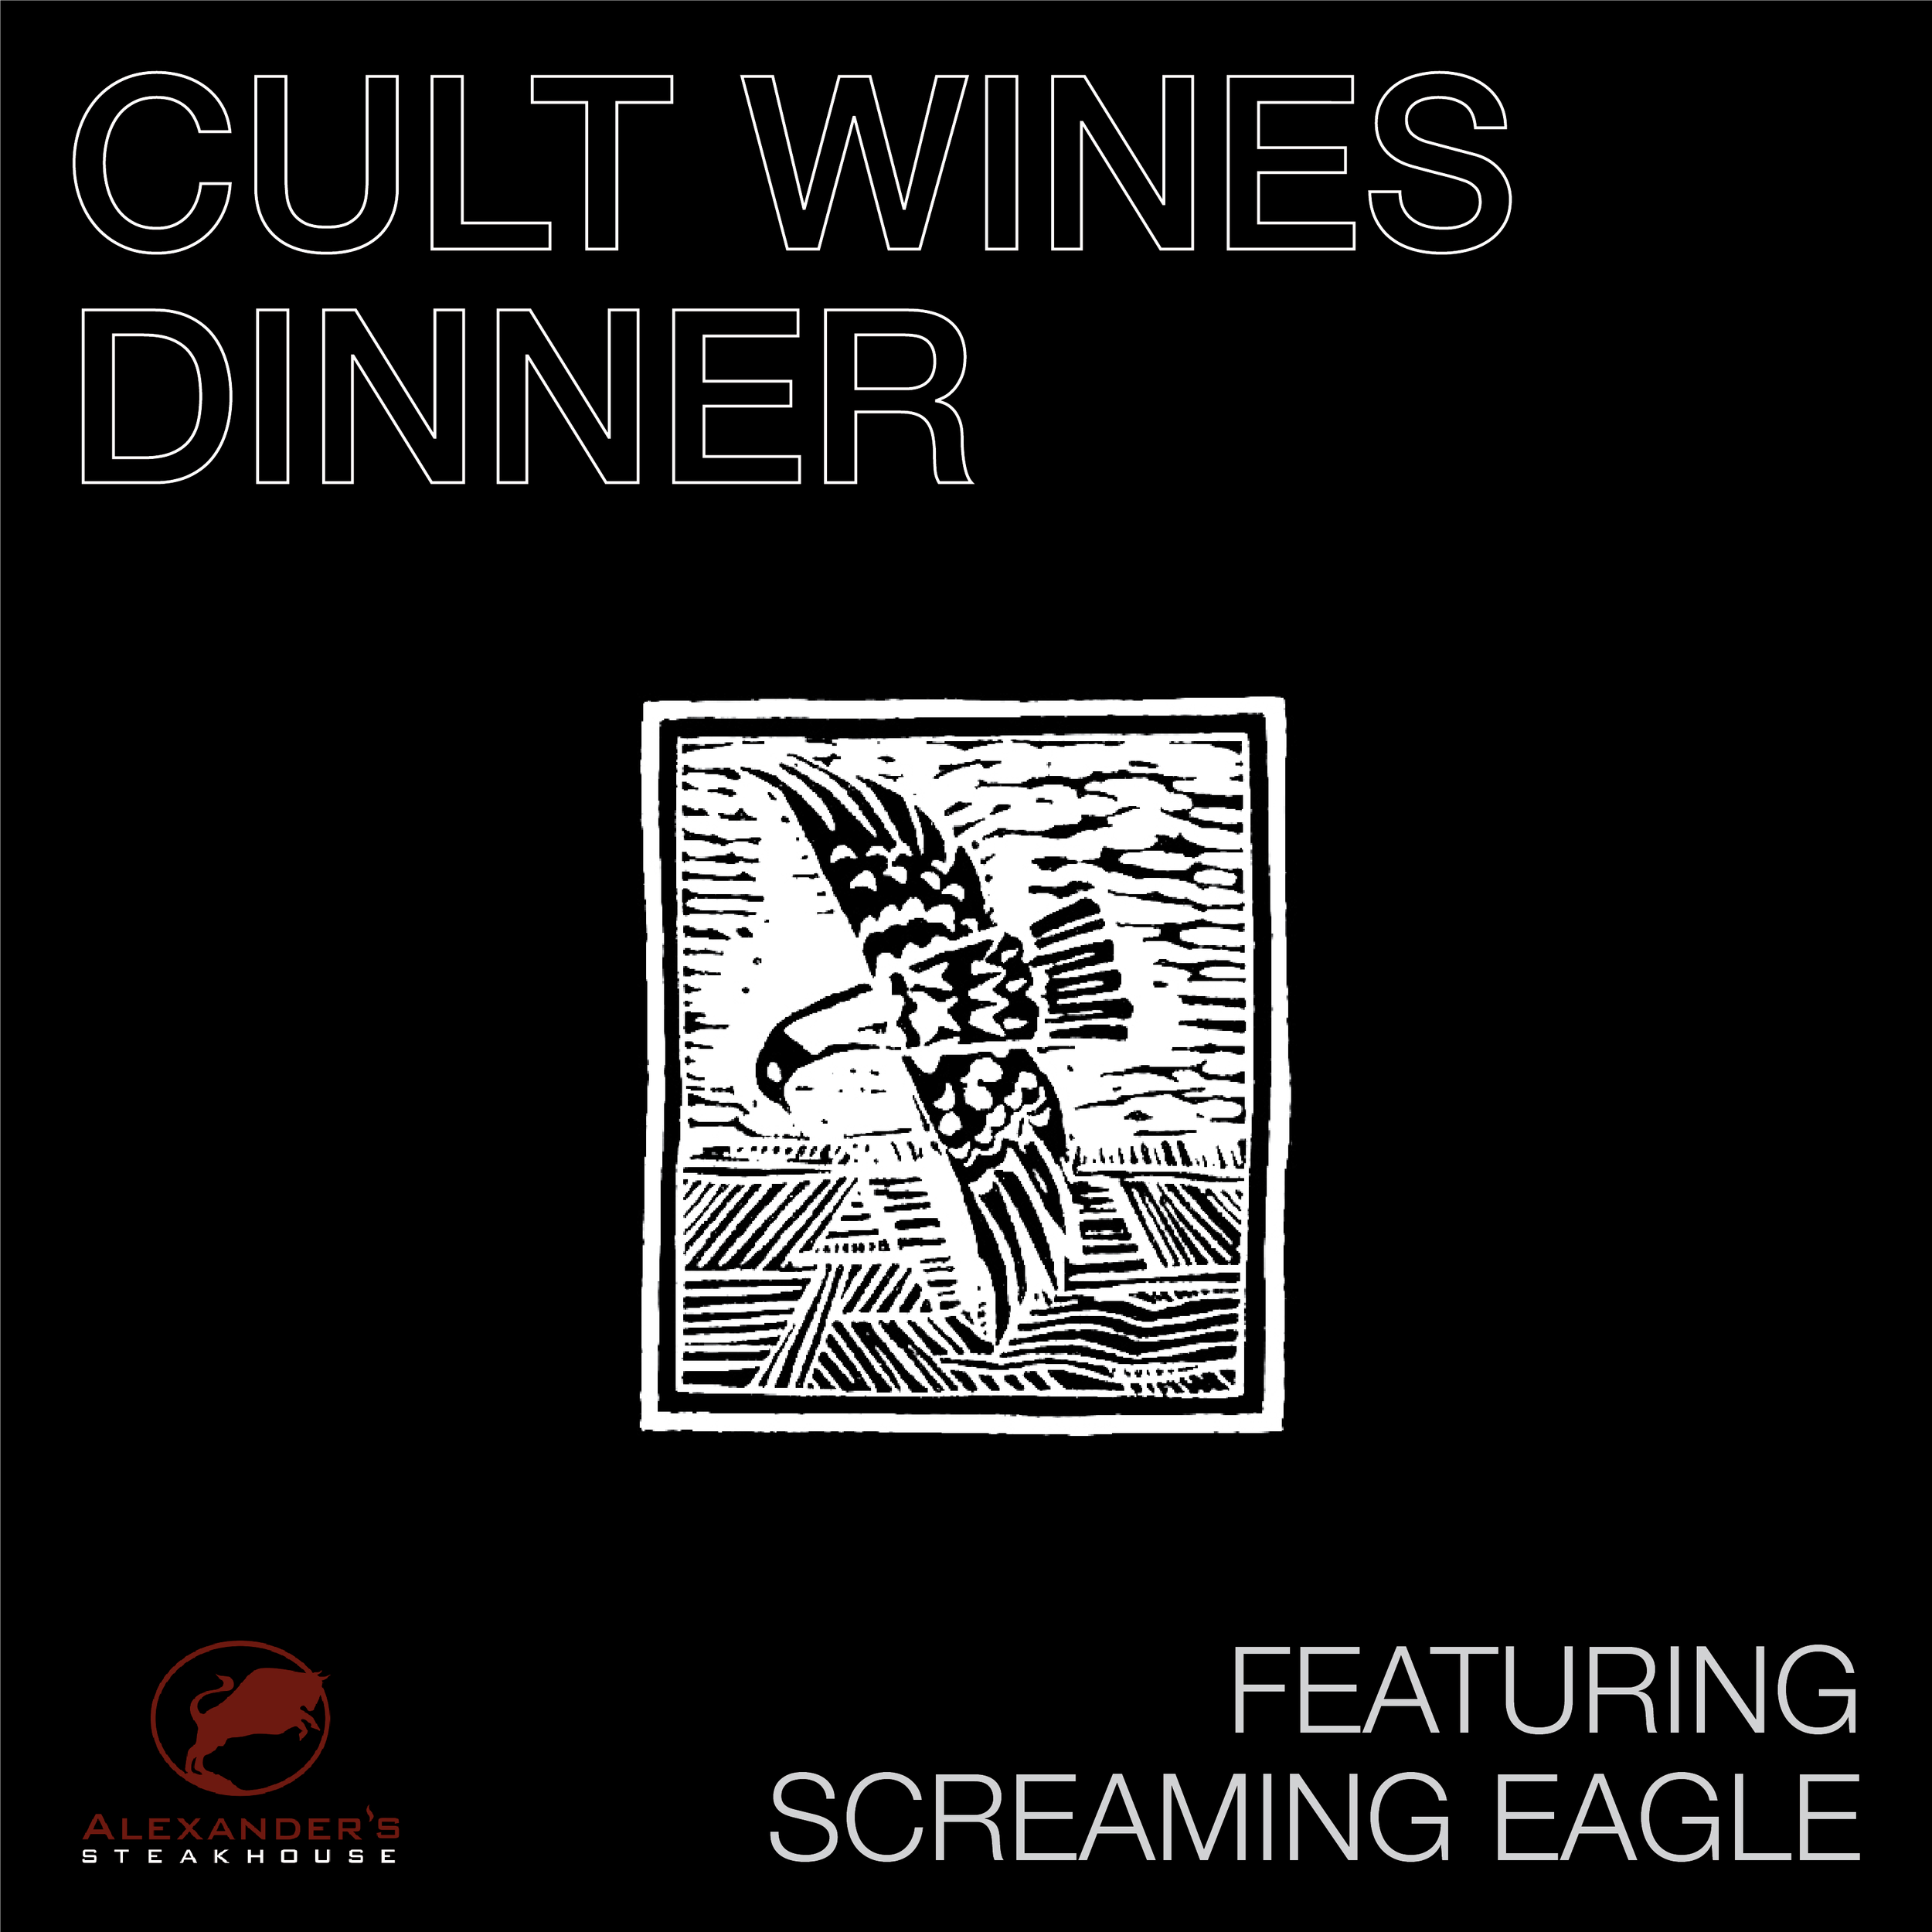 Cult Wines Dinner  ft. Screaming Eagle Alexander's Steakhouse in Pasadena  August 28, 2019   6:30 PM - 9:00 PM